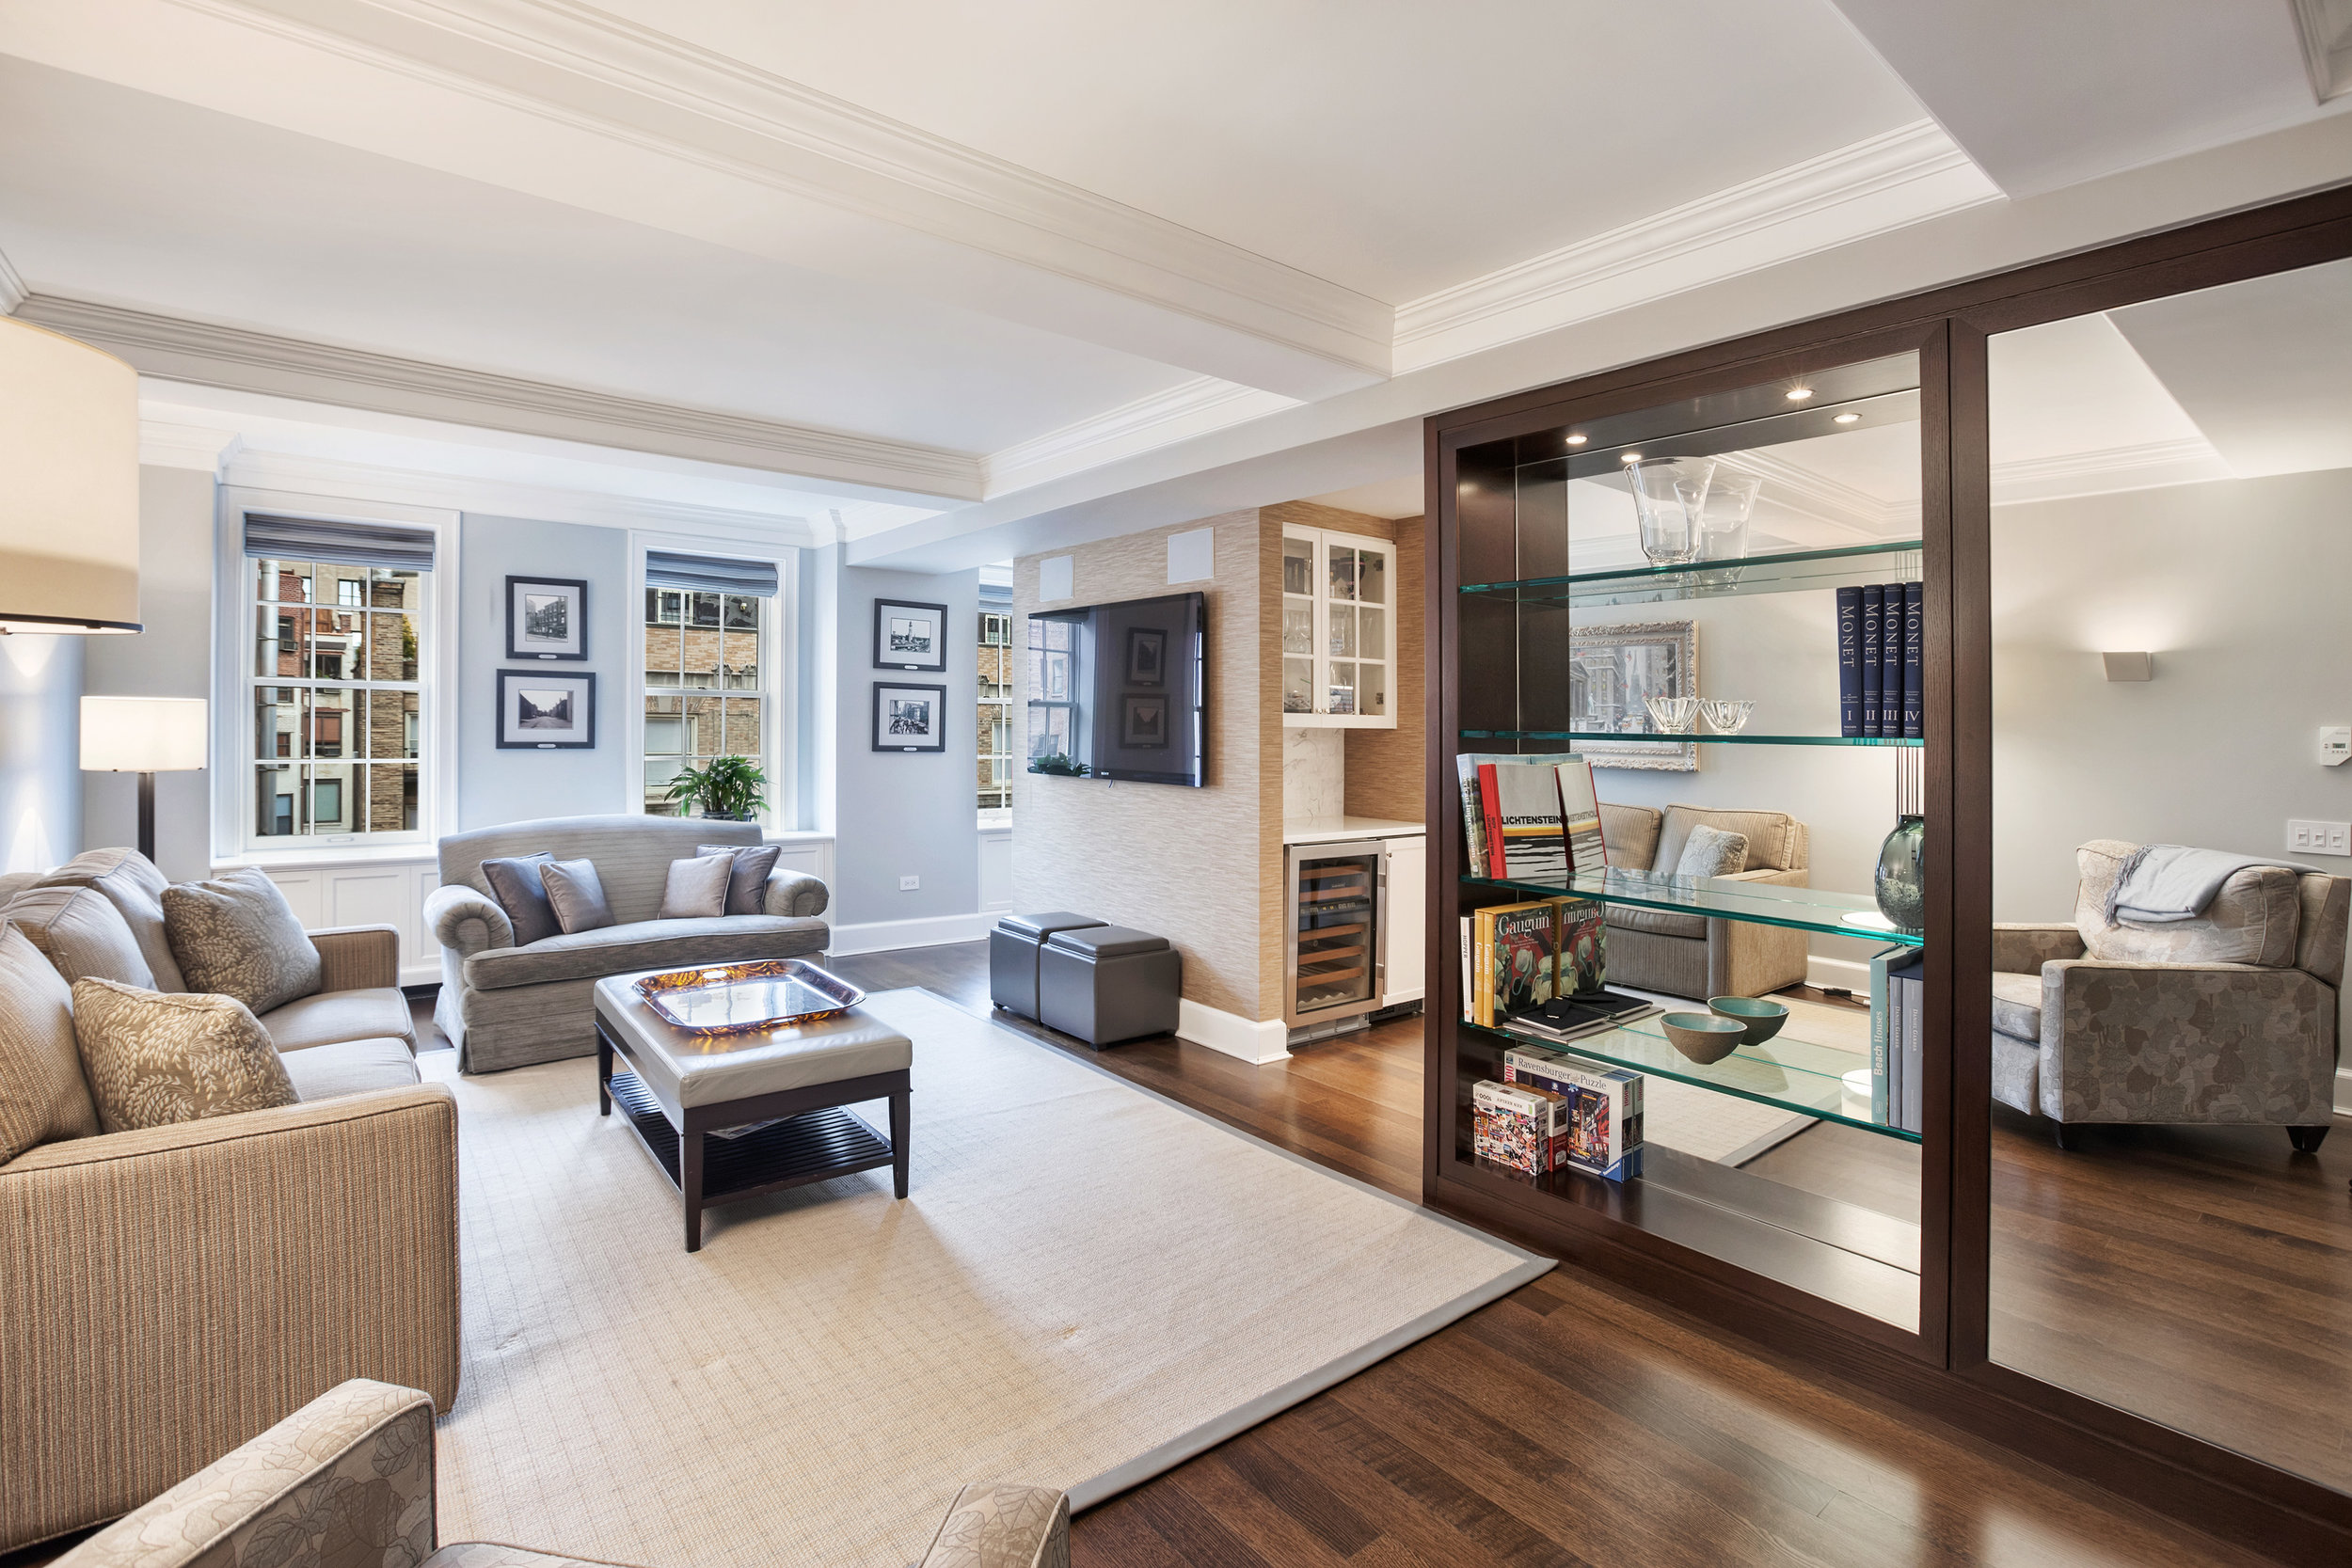 28 East 10th Street Unit 10H - $6,300,000